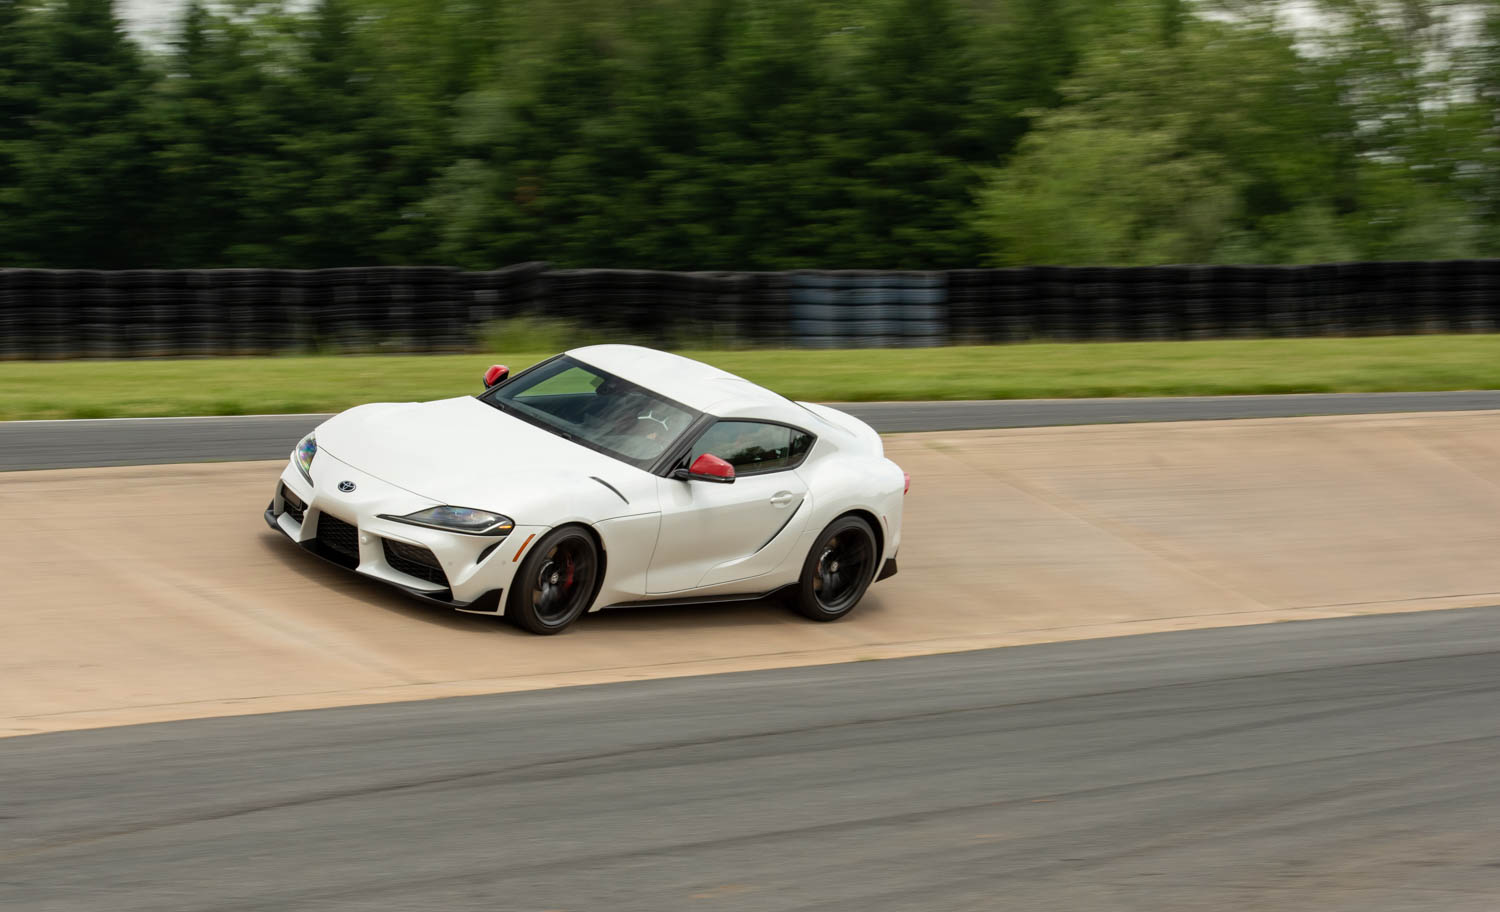 2020 Toyota Supra GR on the track